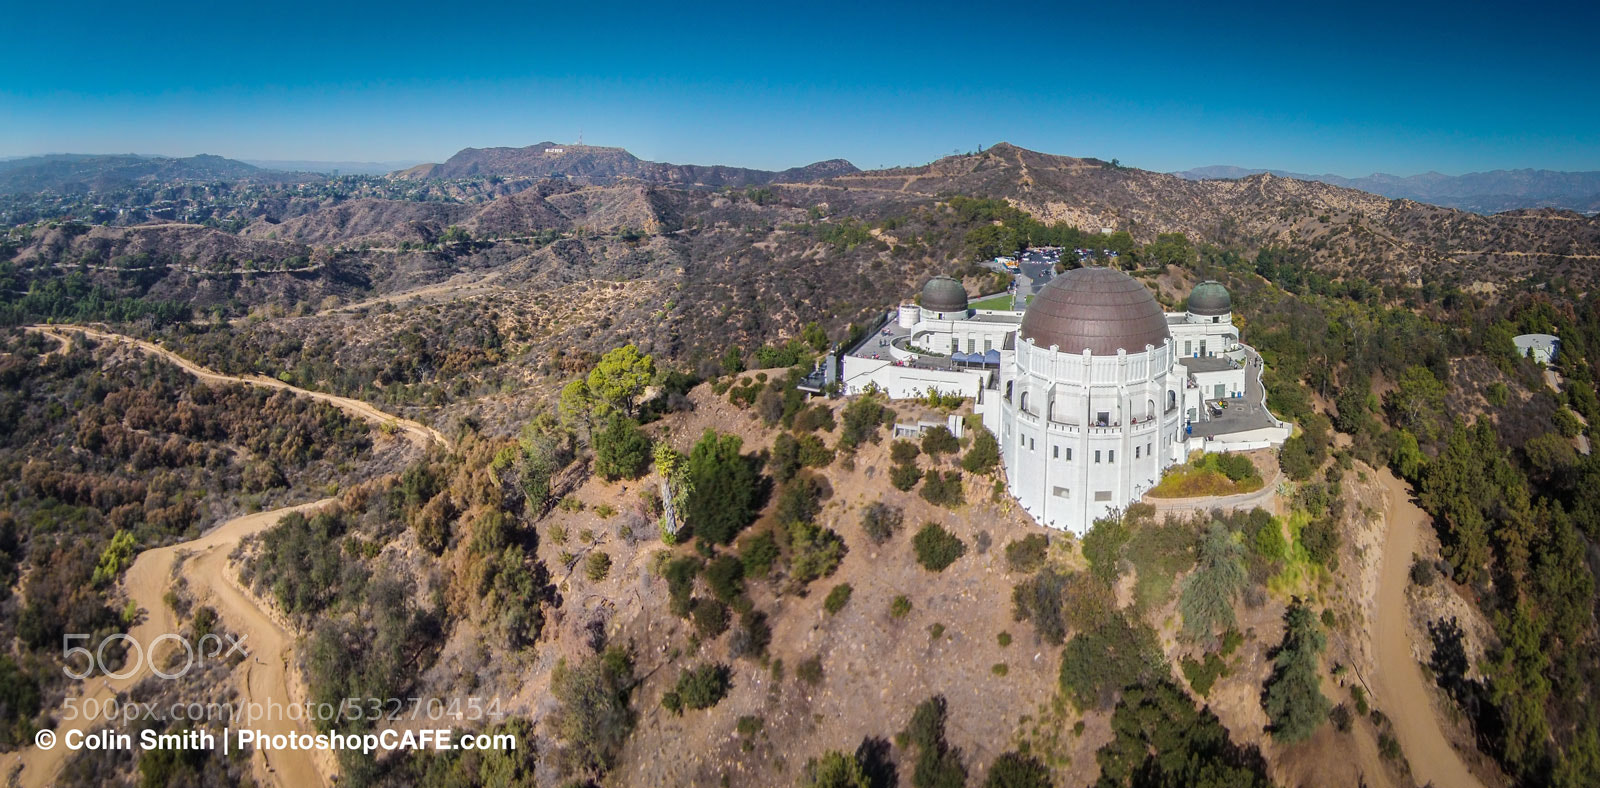 Photograph Griffith Observatory by Colin Smith on 500px